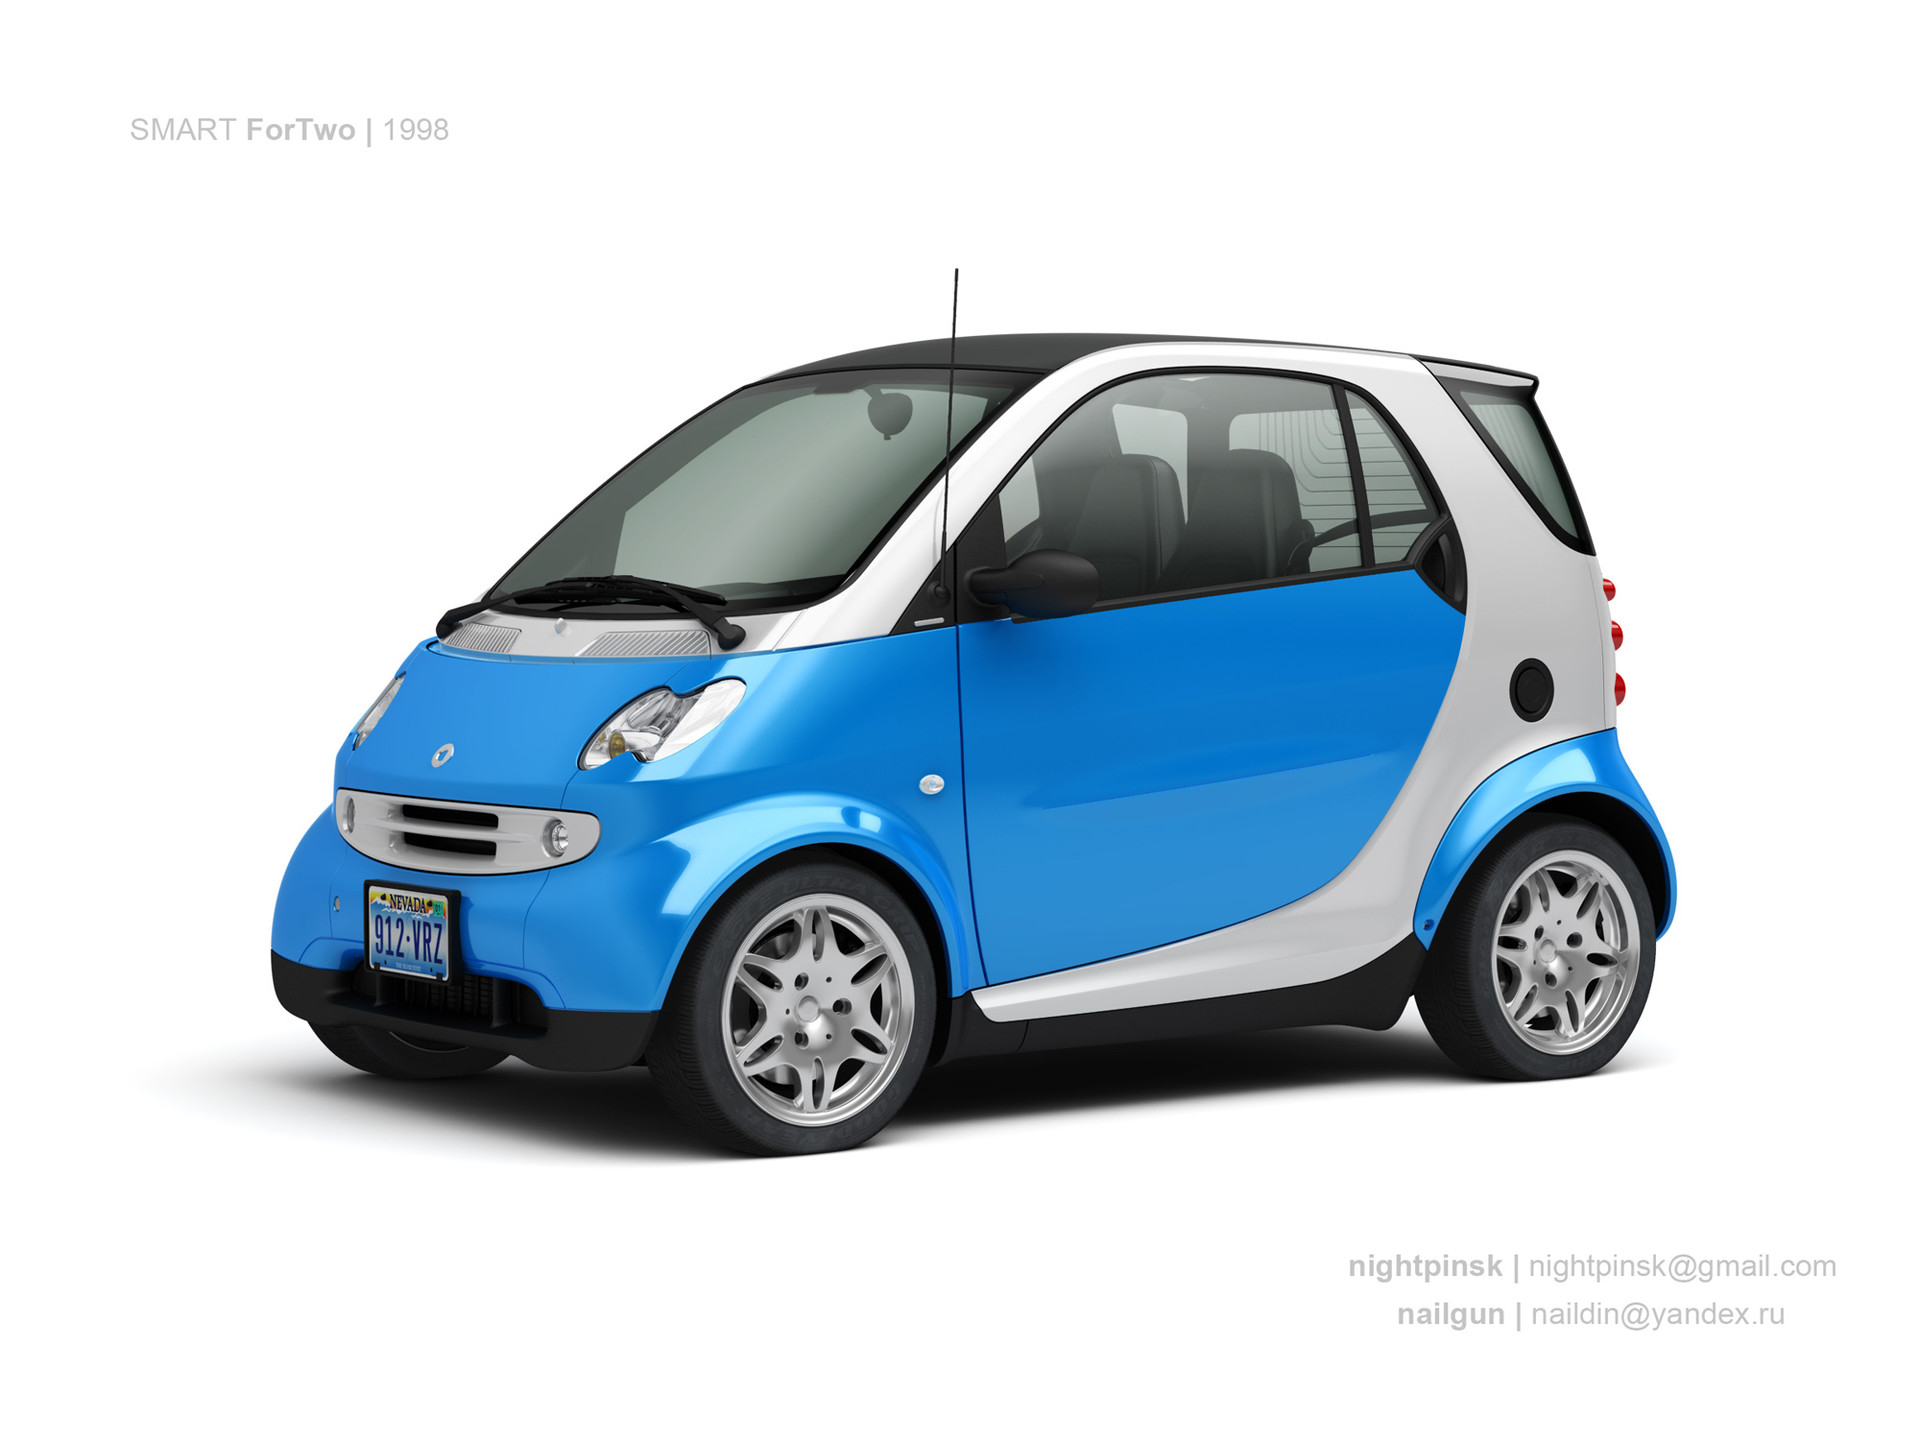 Nail khusnutdinov germany smart fortwo 0